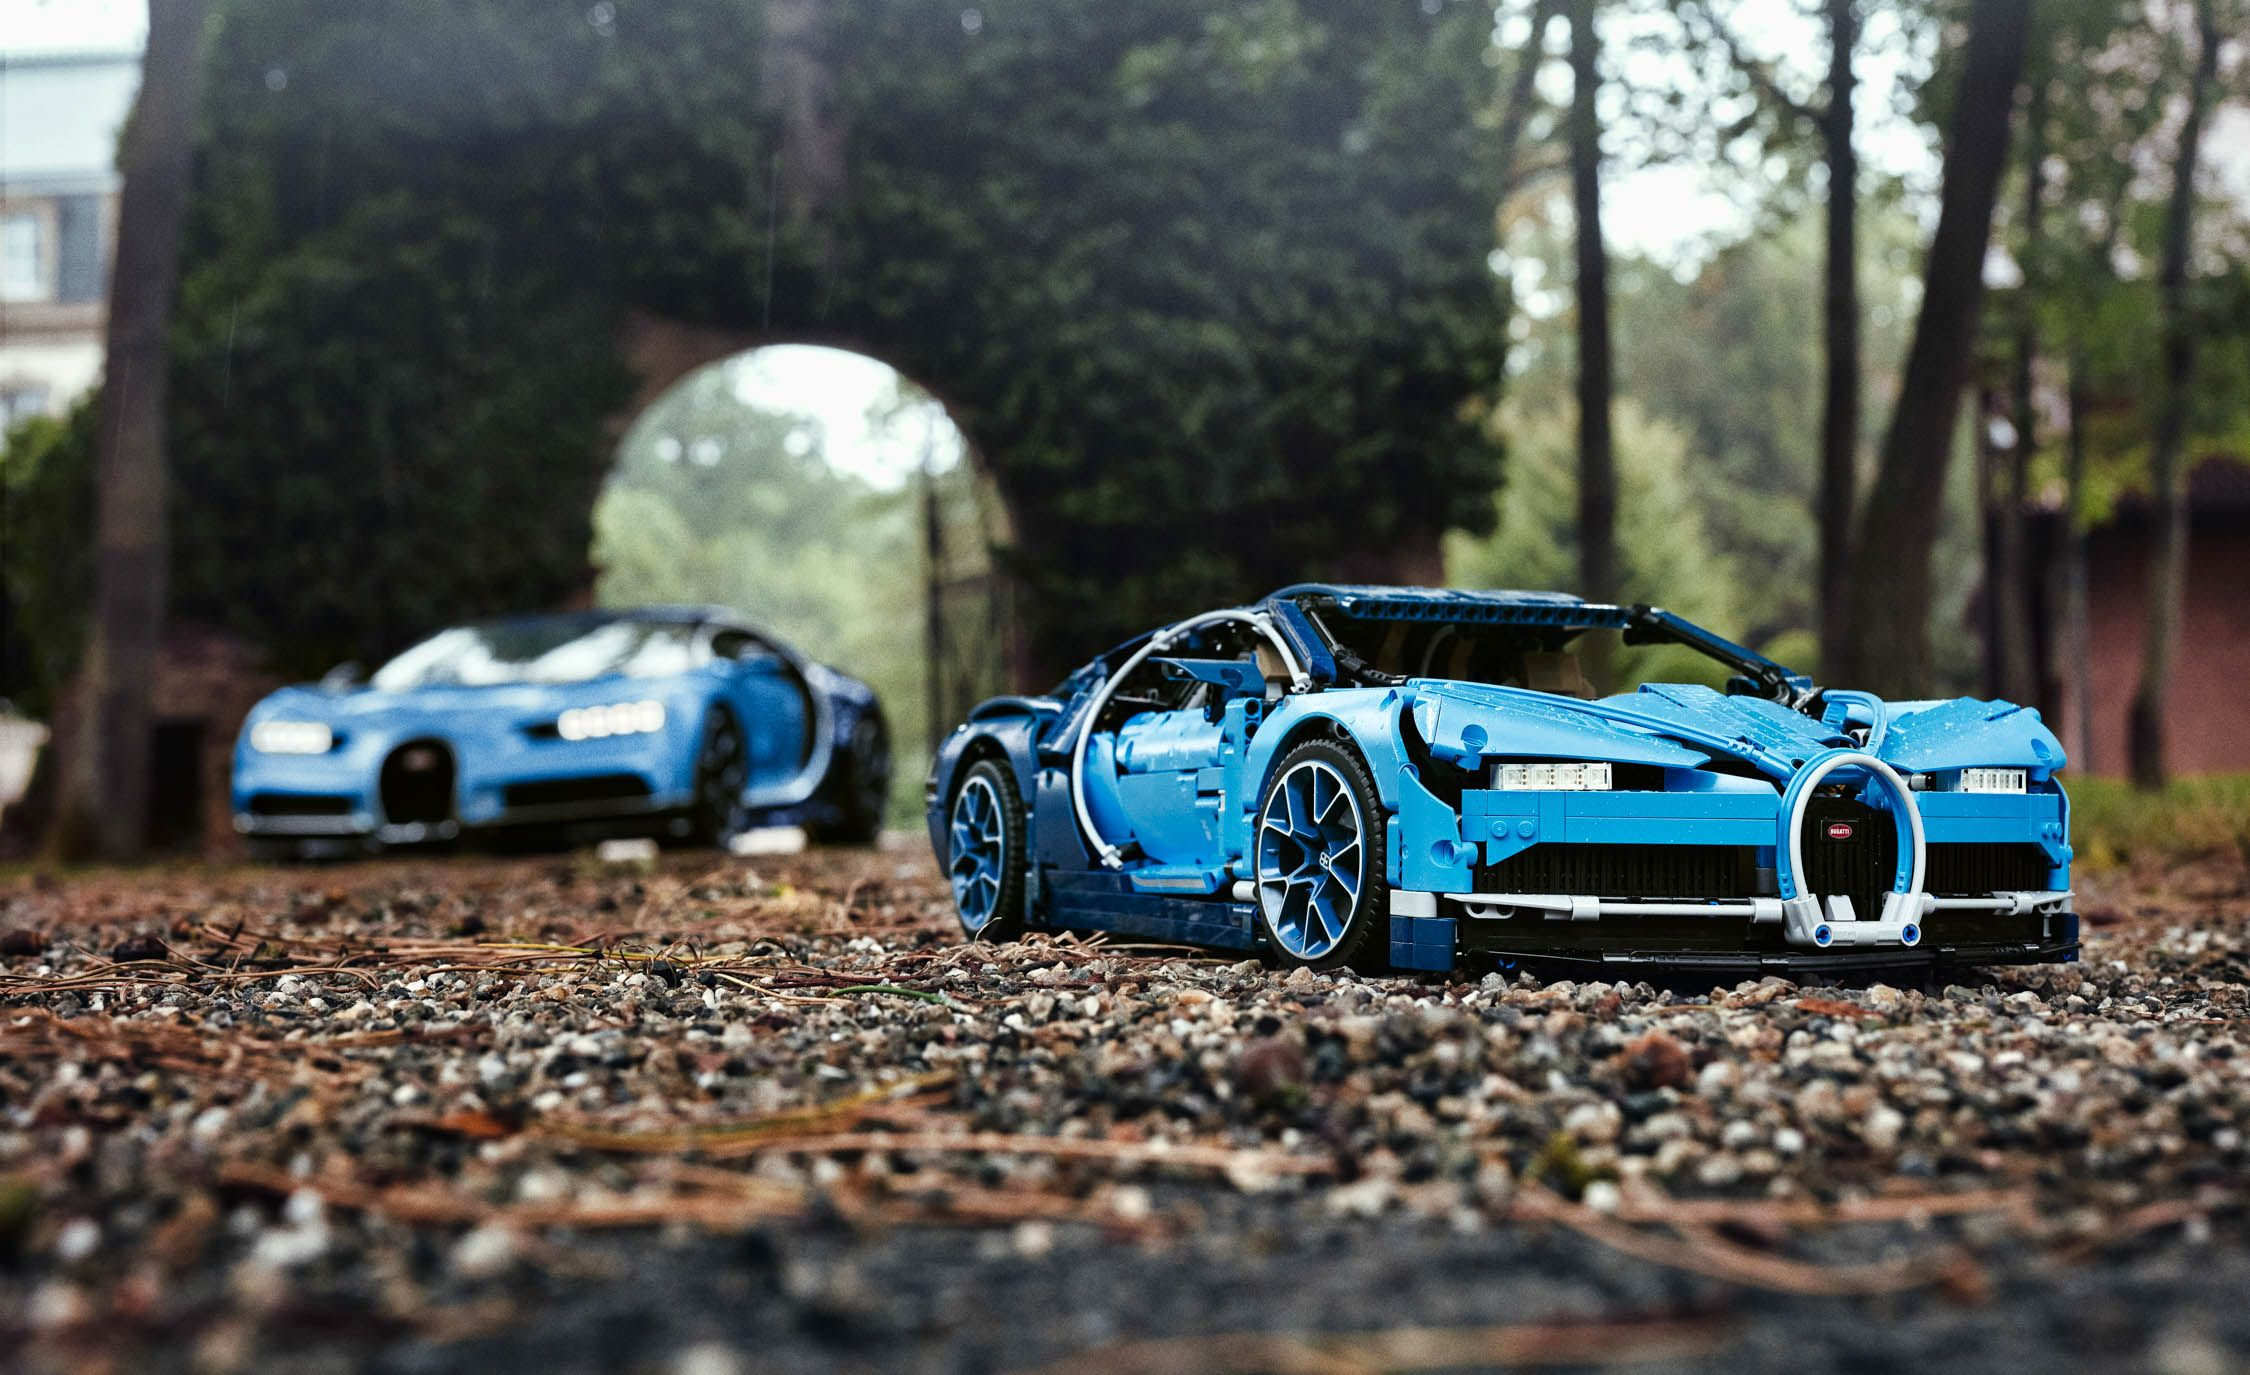 Lego Releases 3599 Piece Bugatti Chiron Kit News Car And Driver